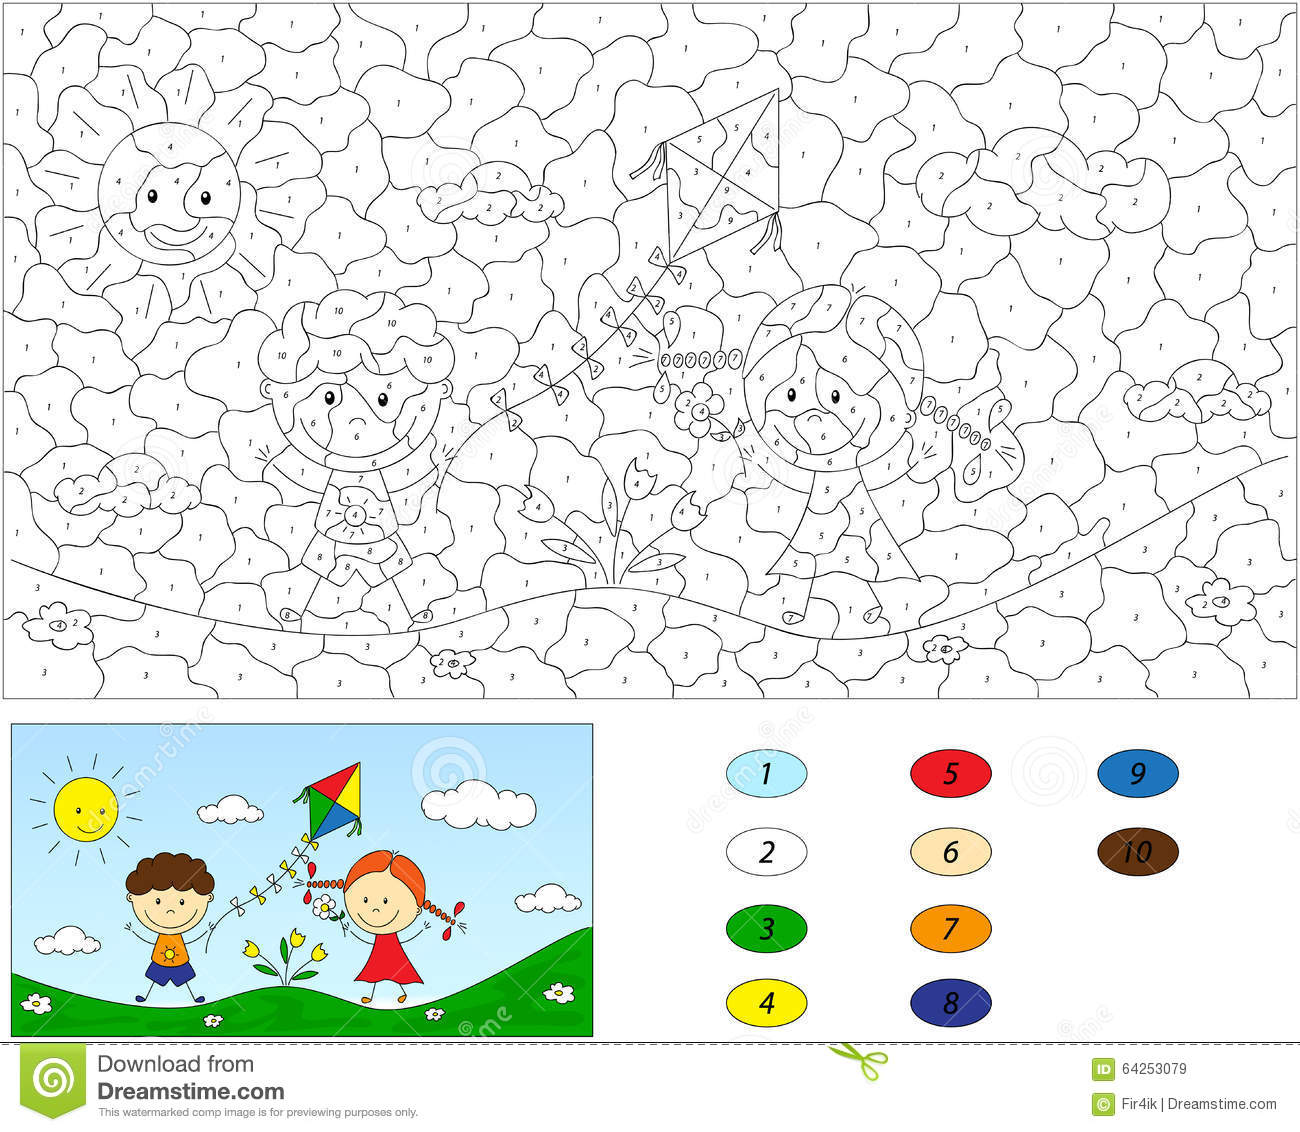 color by number educational game for kids a boy and a play